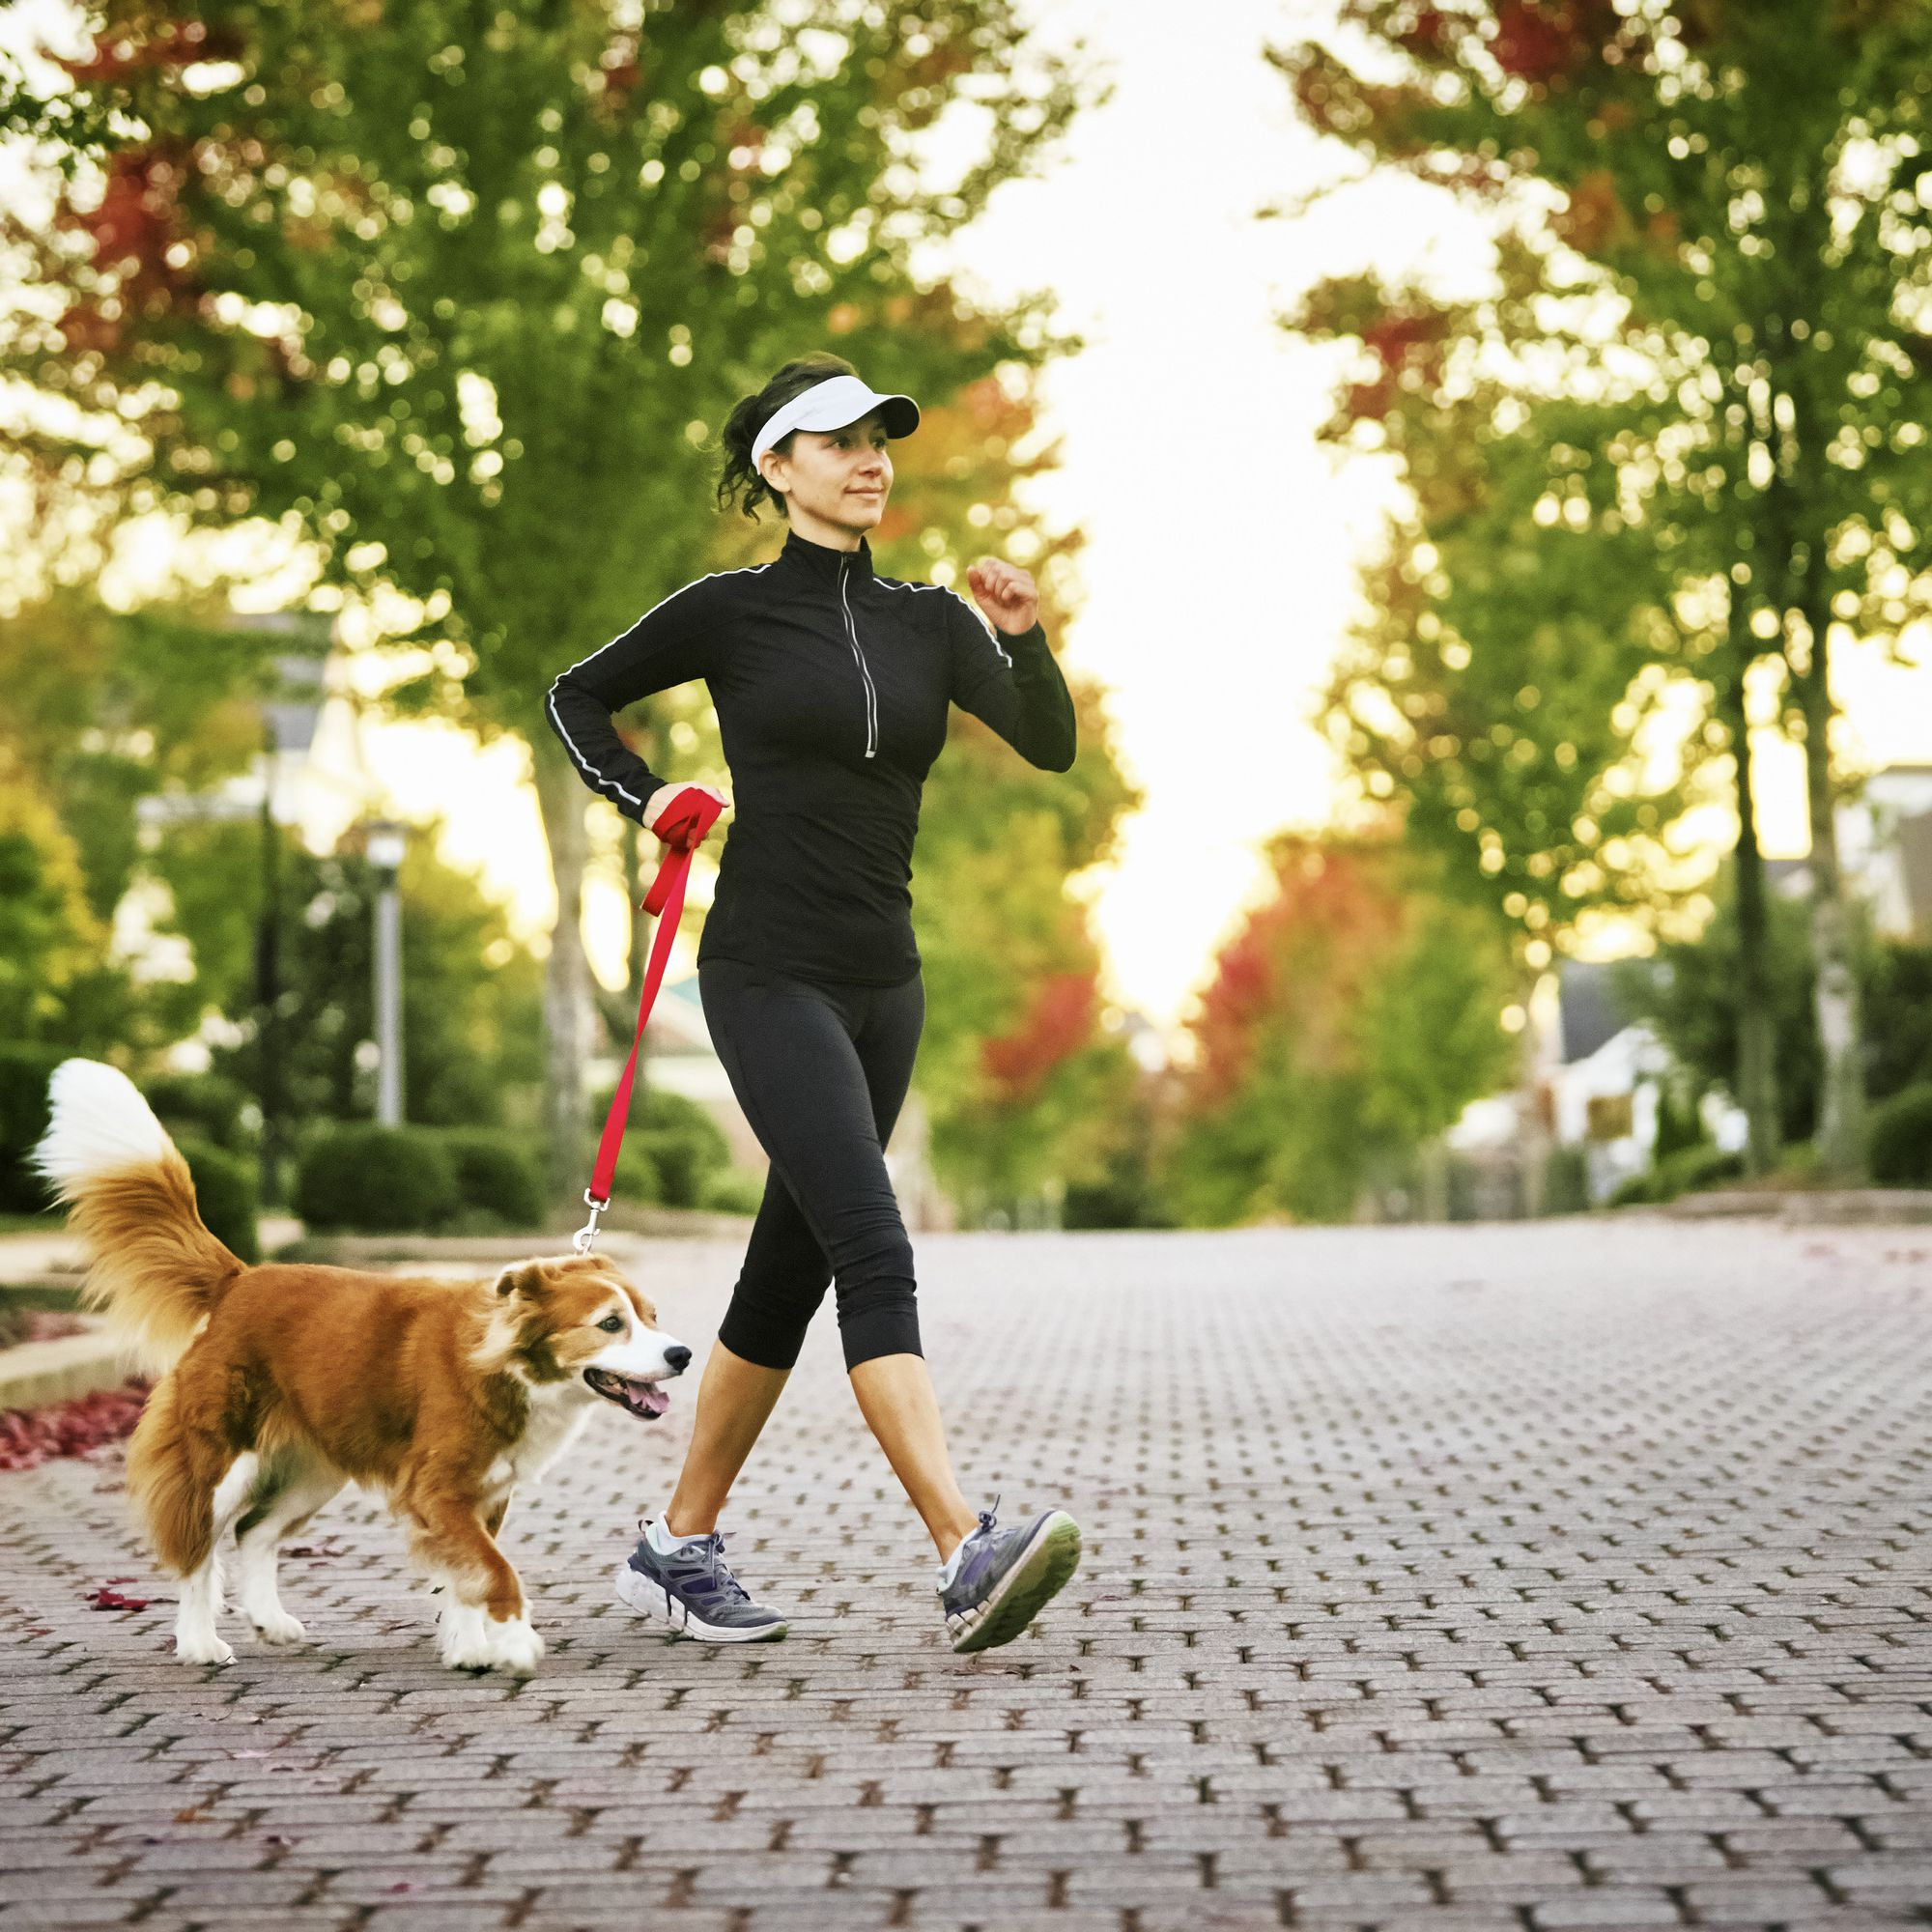 4 Reasons Why Walking Is Real Exercise